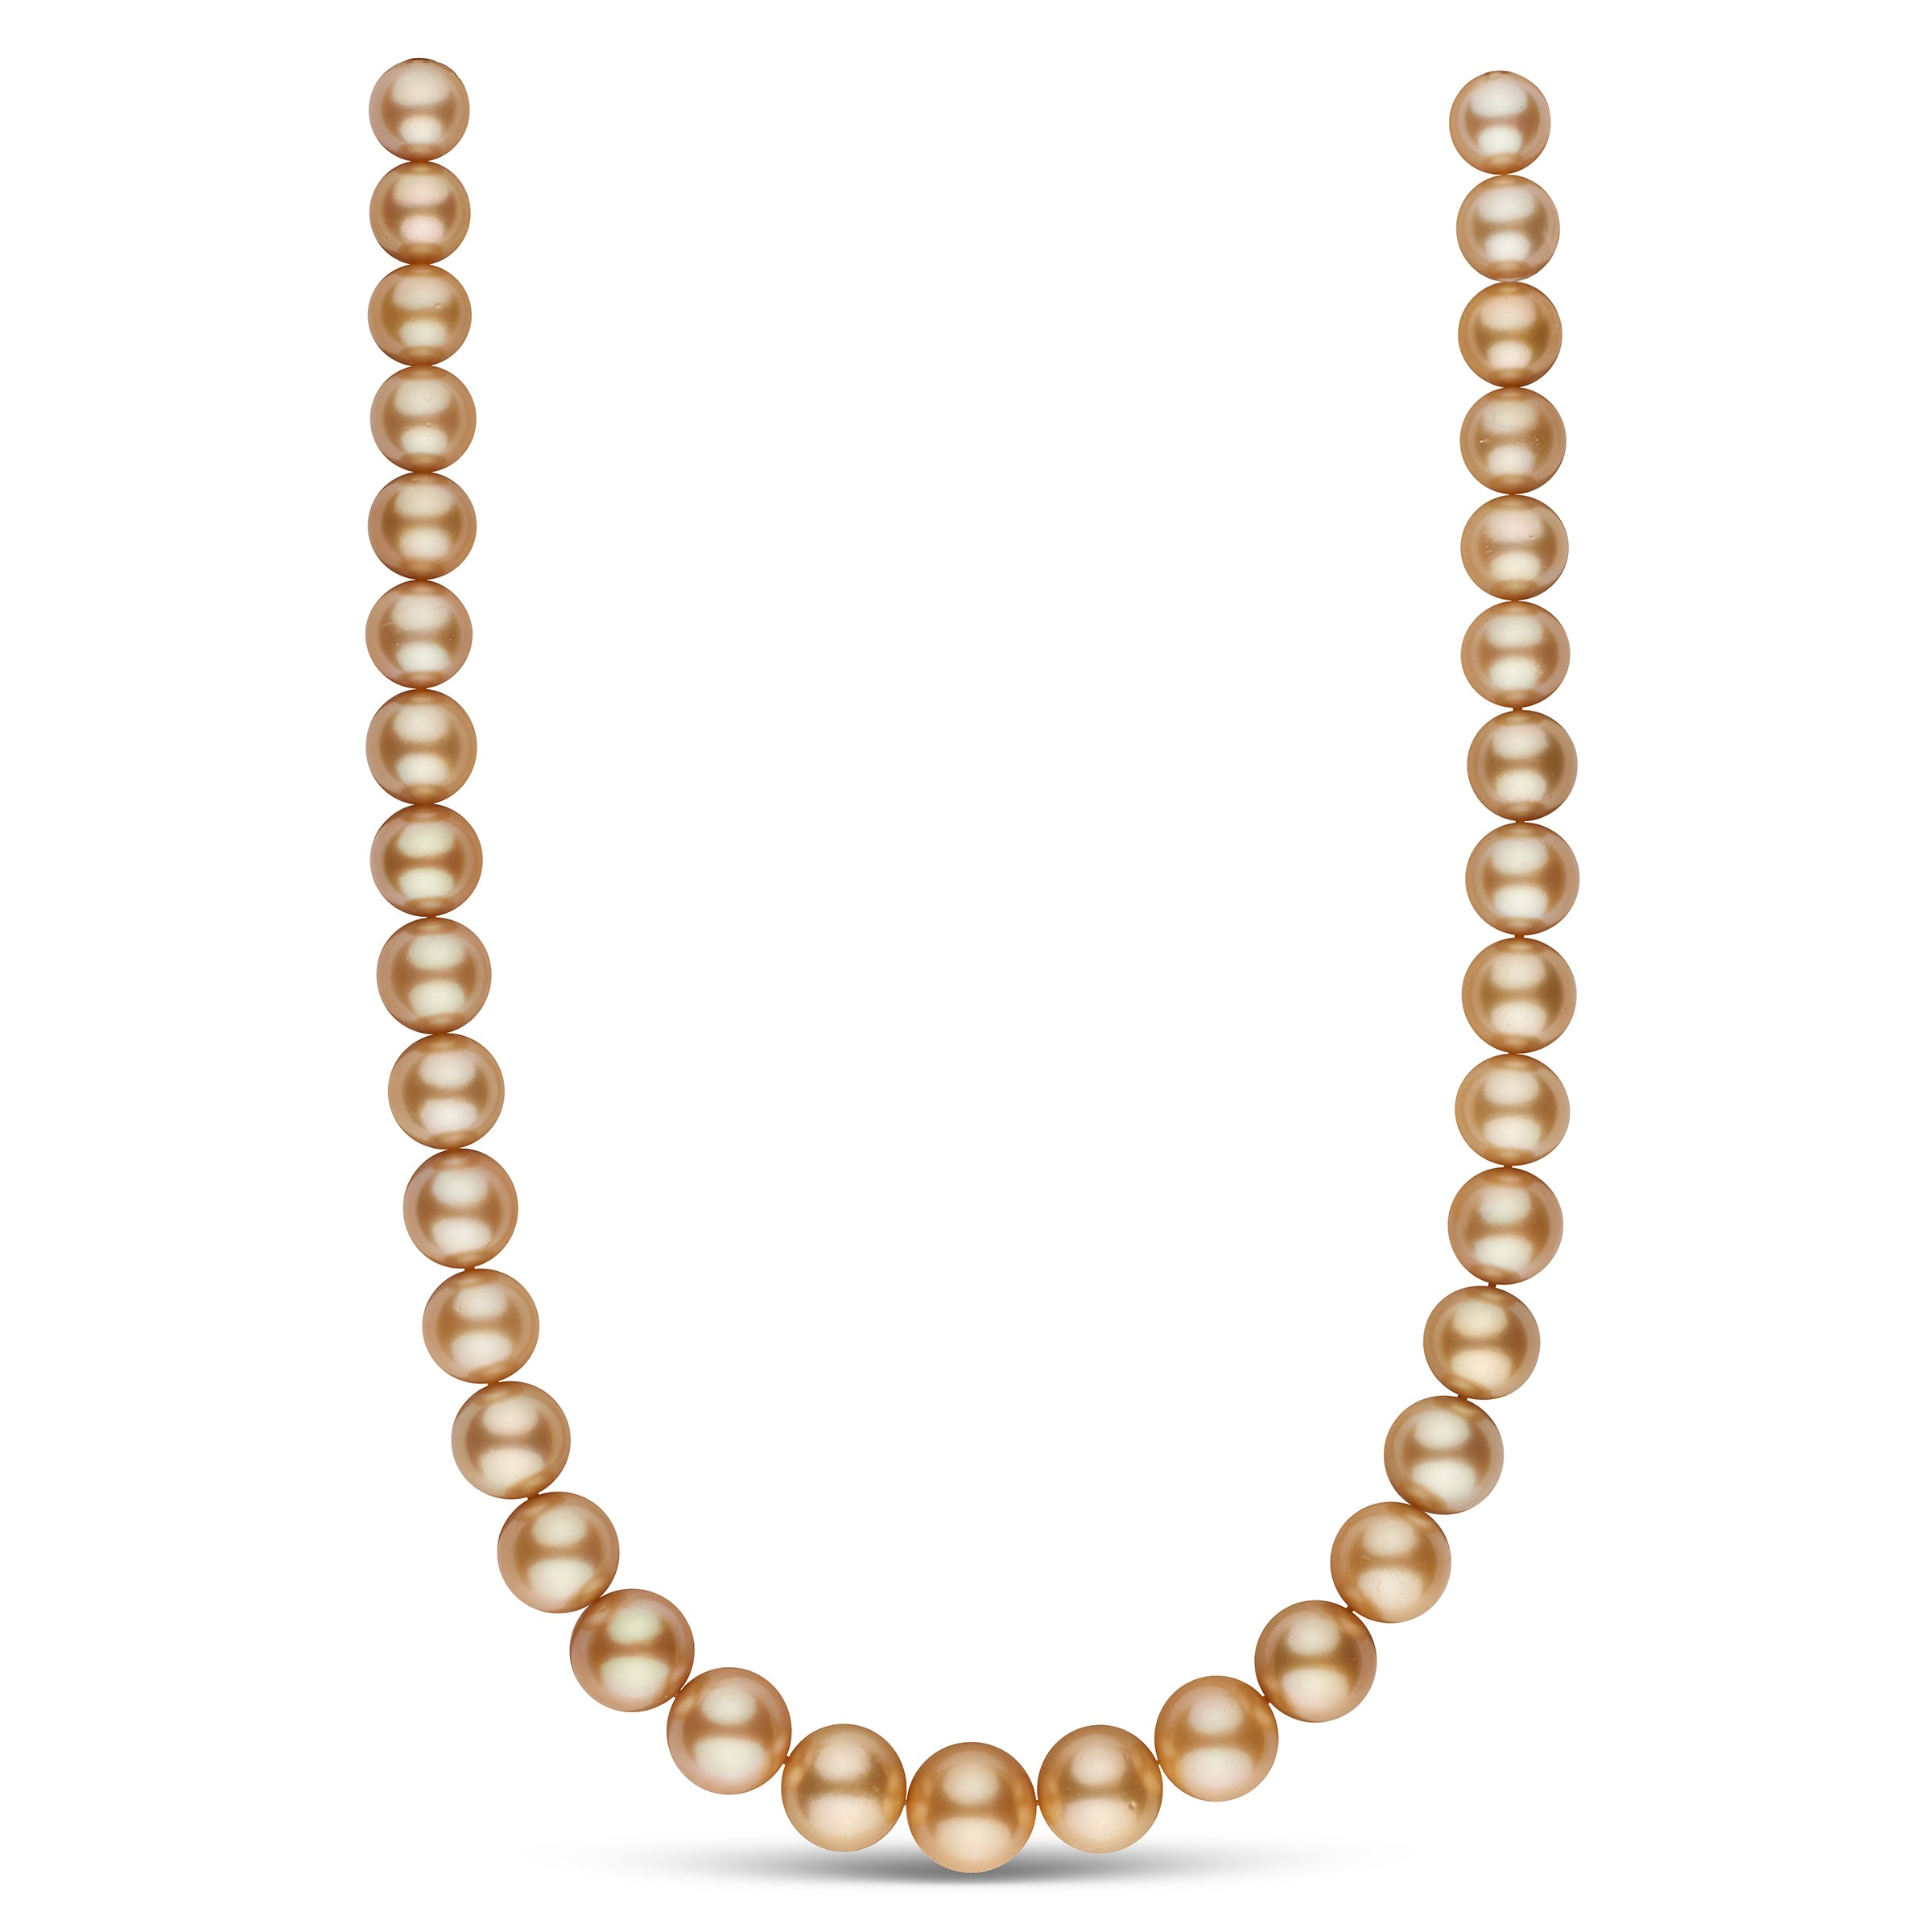 The My Fair Lady Golden South Sea Pearl Necklace